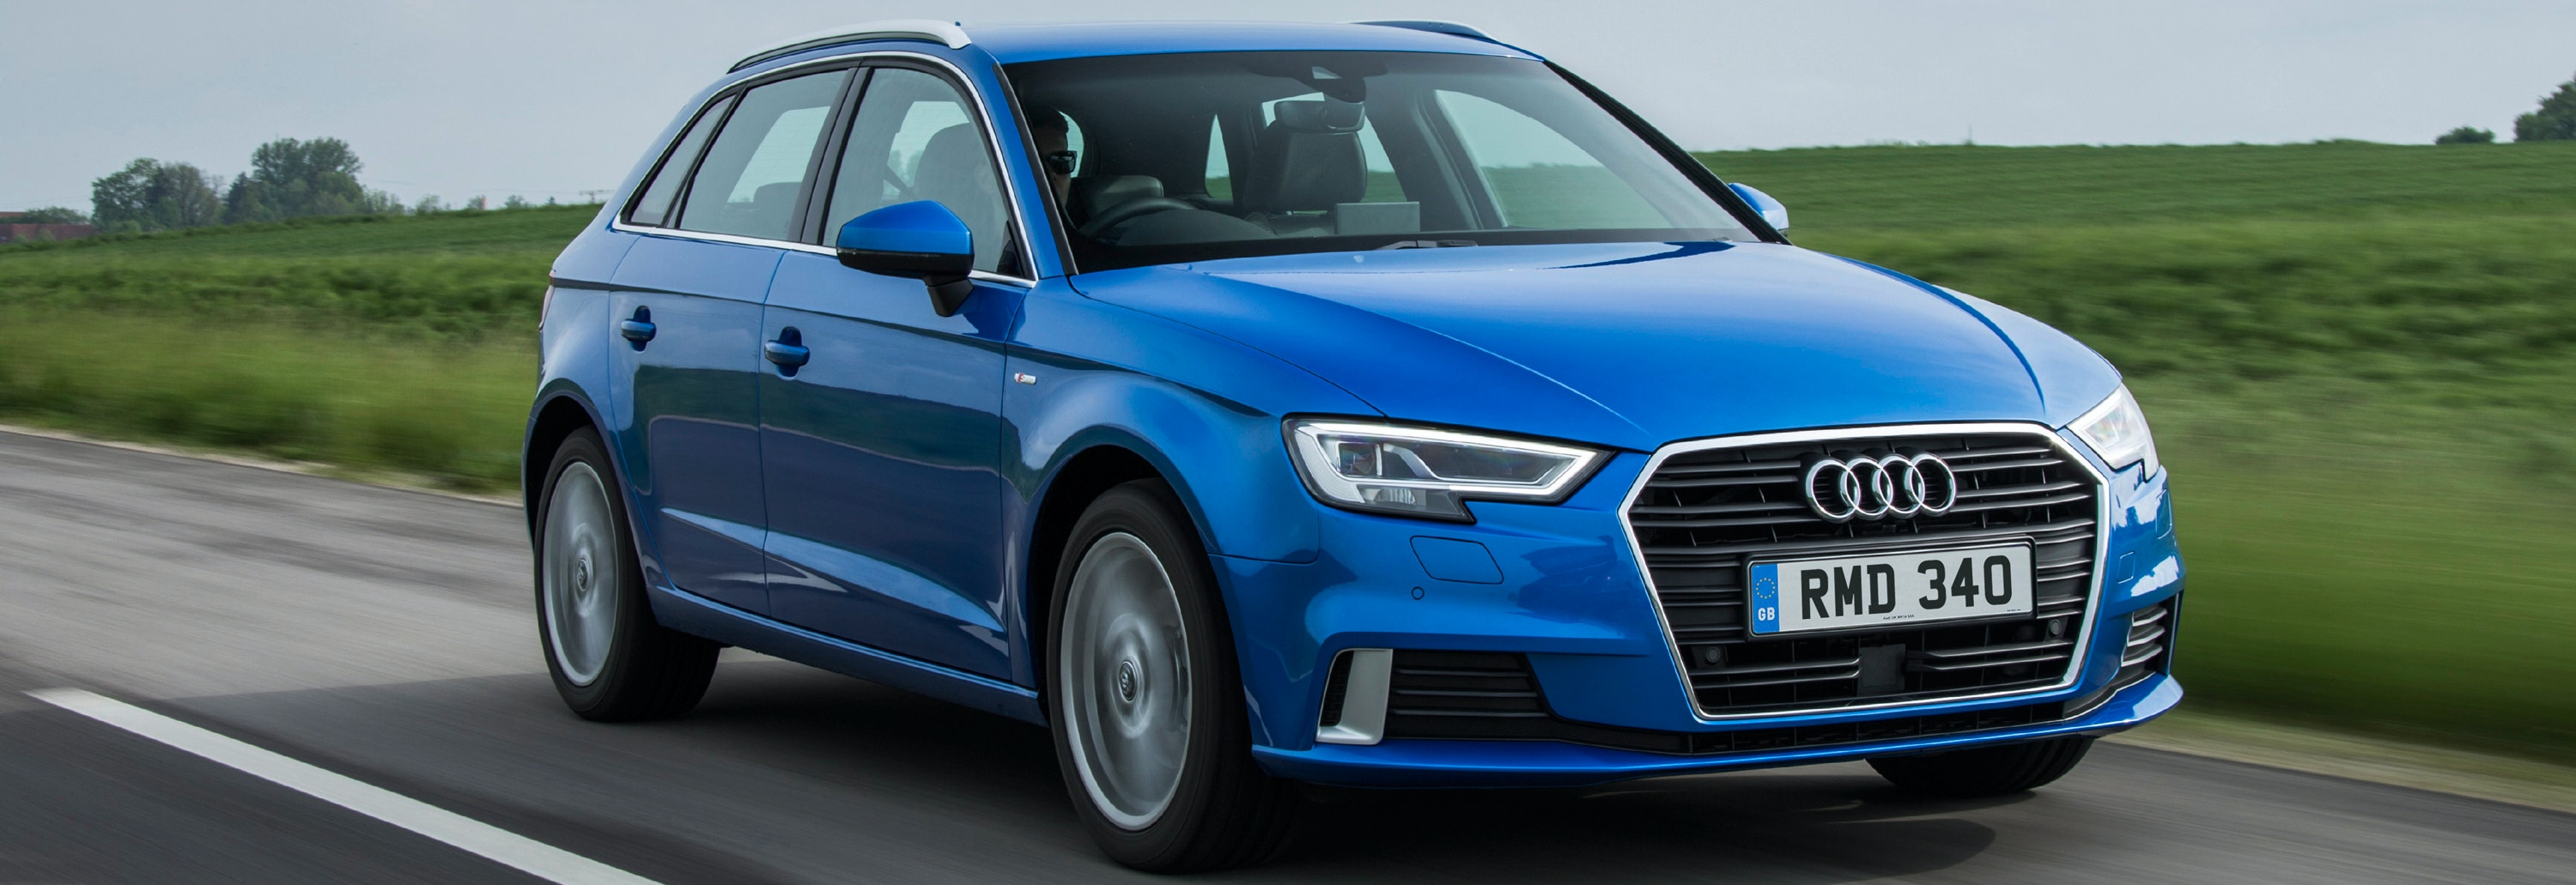 Audi A3 Blue Driving Front